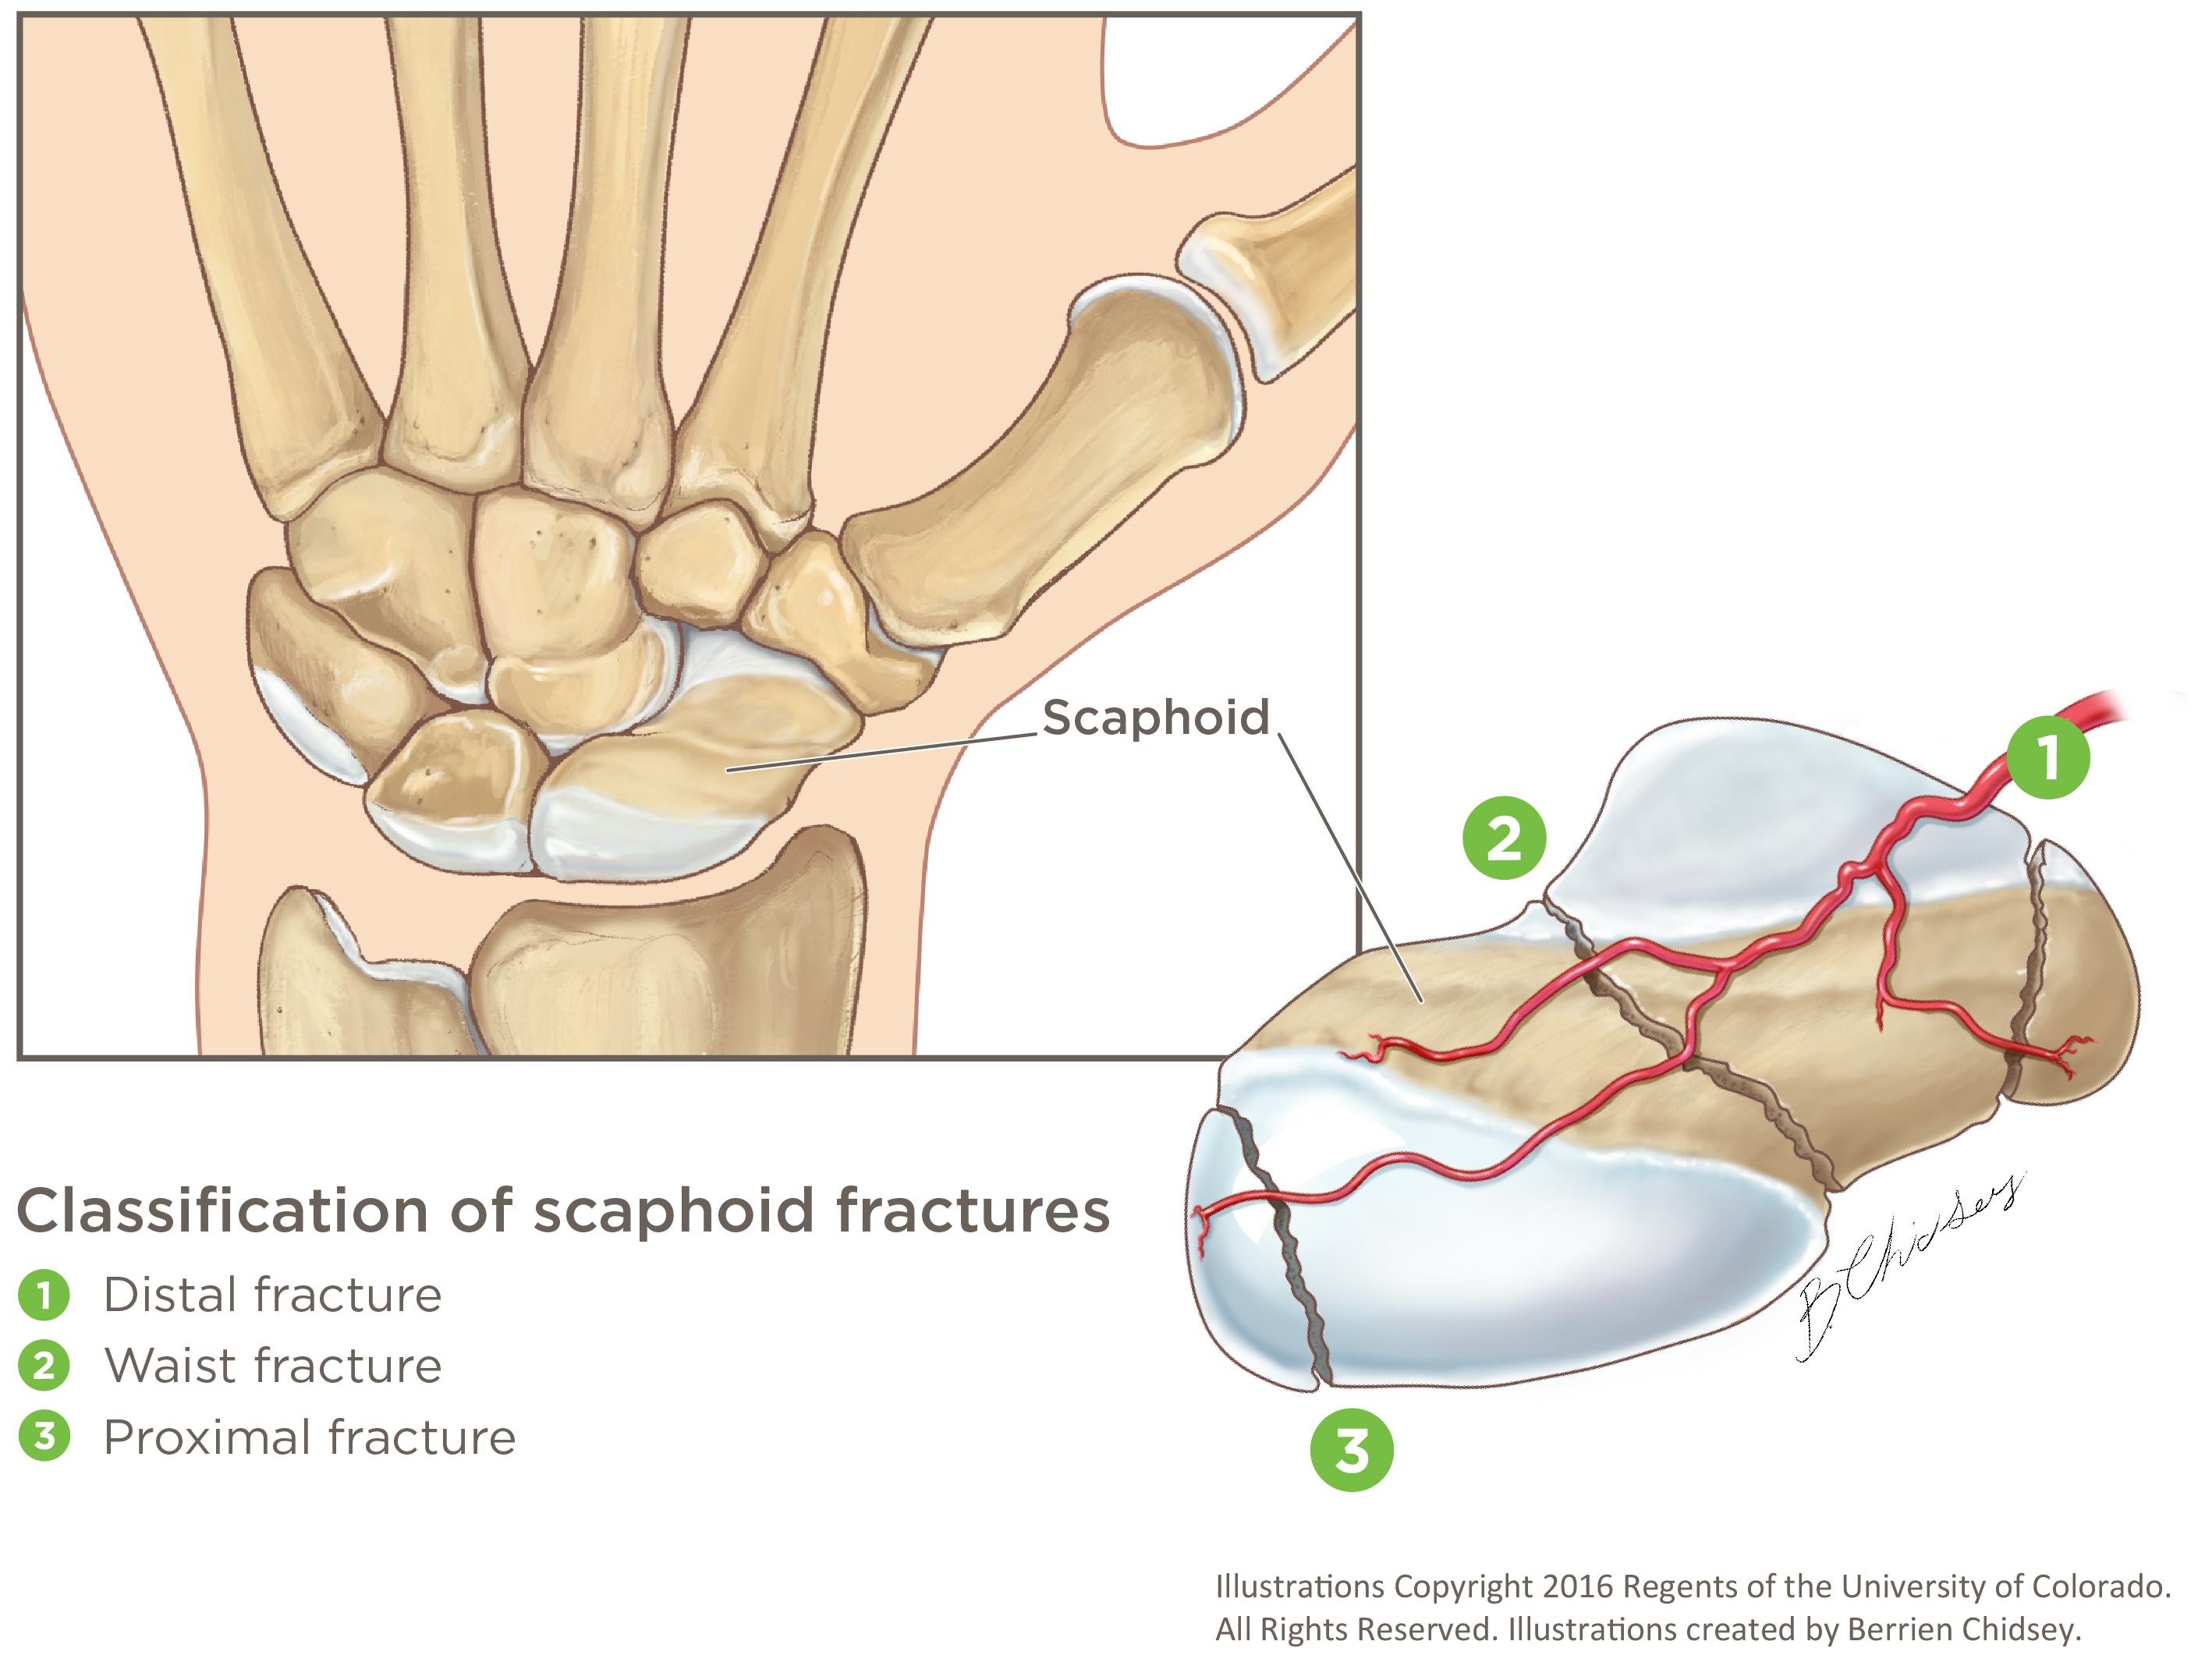 A graphic illustration of three types of scaphoid fractures: distal, waist and proximal.